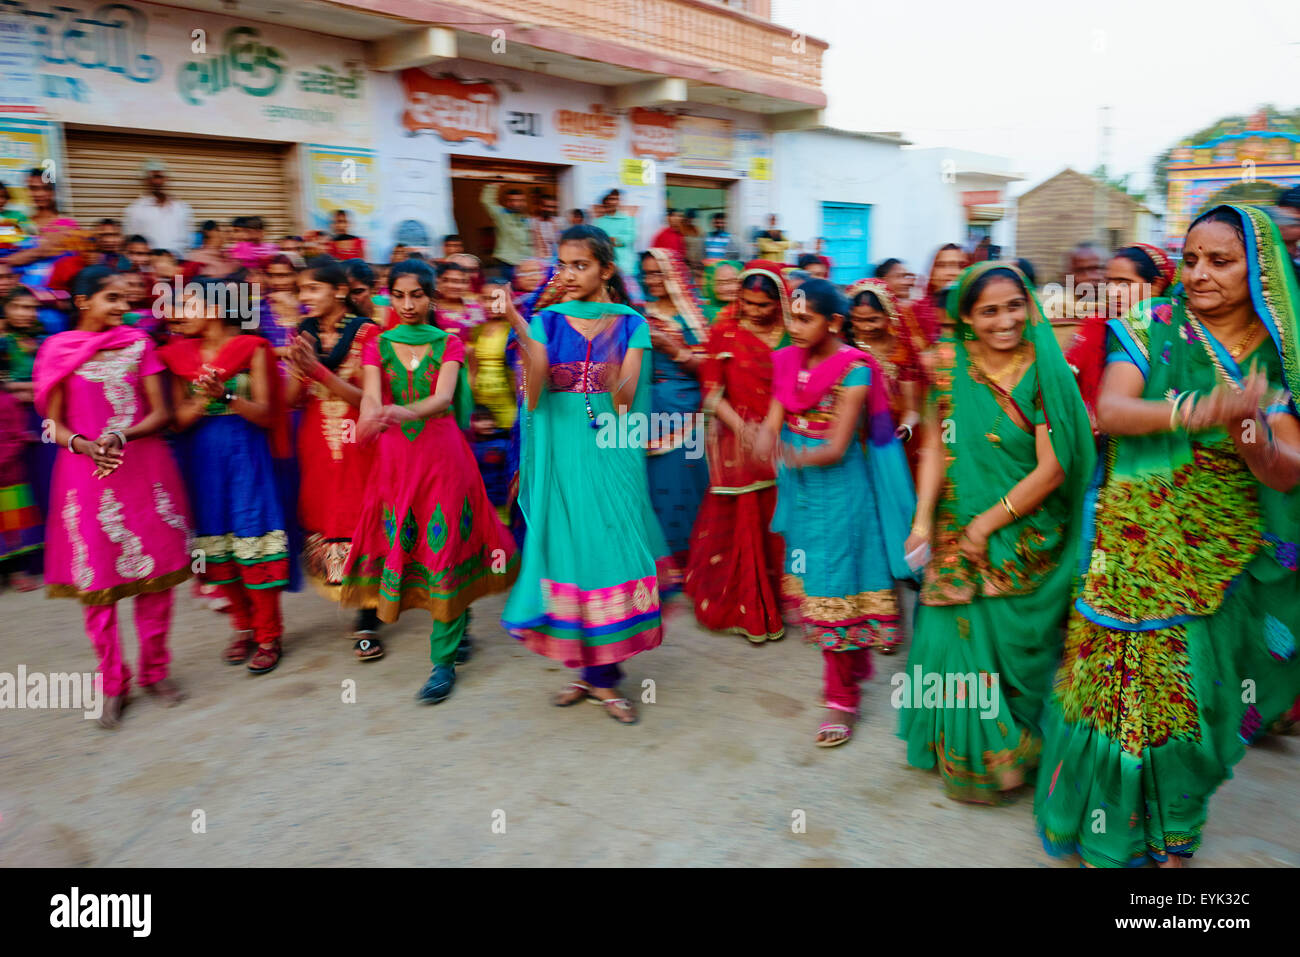 India, Gujarat, Kutch, Dhori village, wedding ceremony - Stock Image